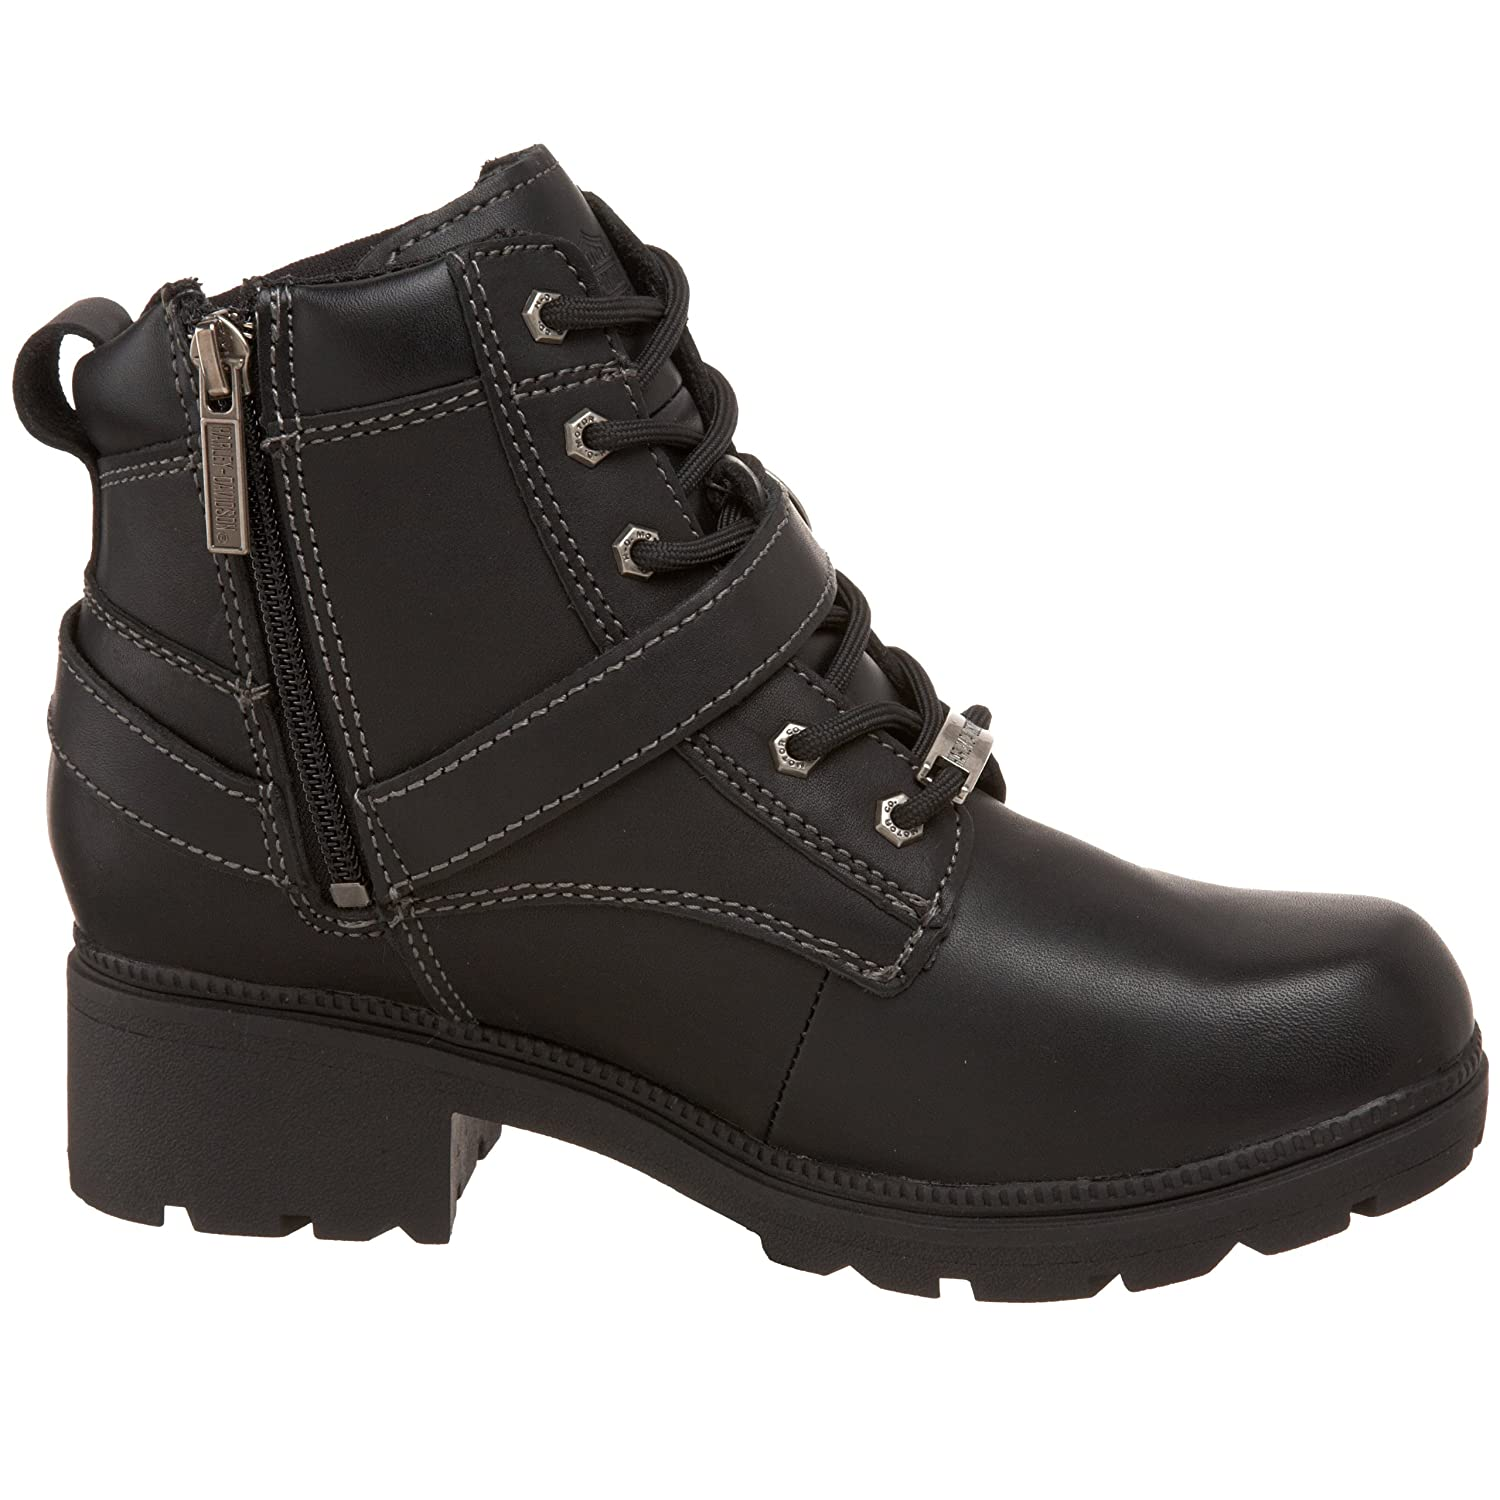 Harley-Davidson Women's Tegan Ankle Boot B0030MIHN2 7.5 B(M) US|Black